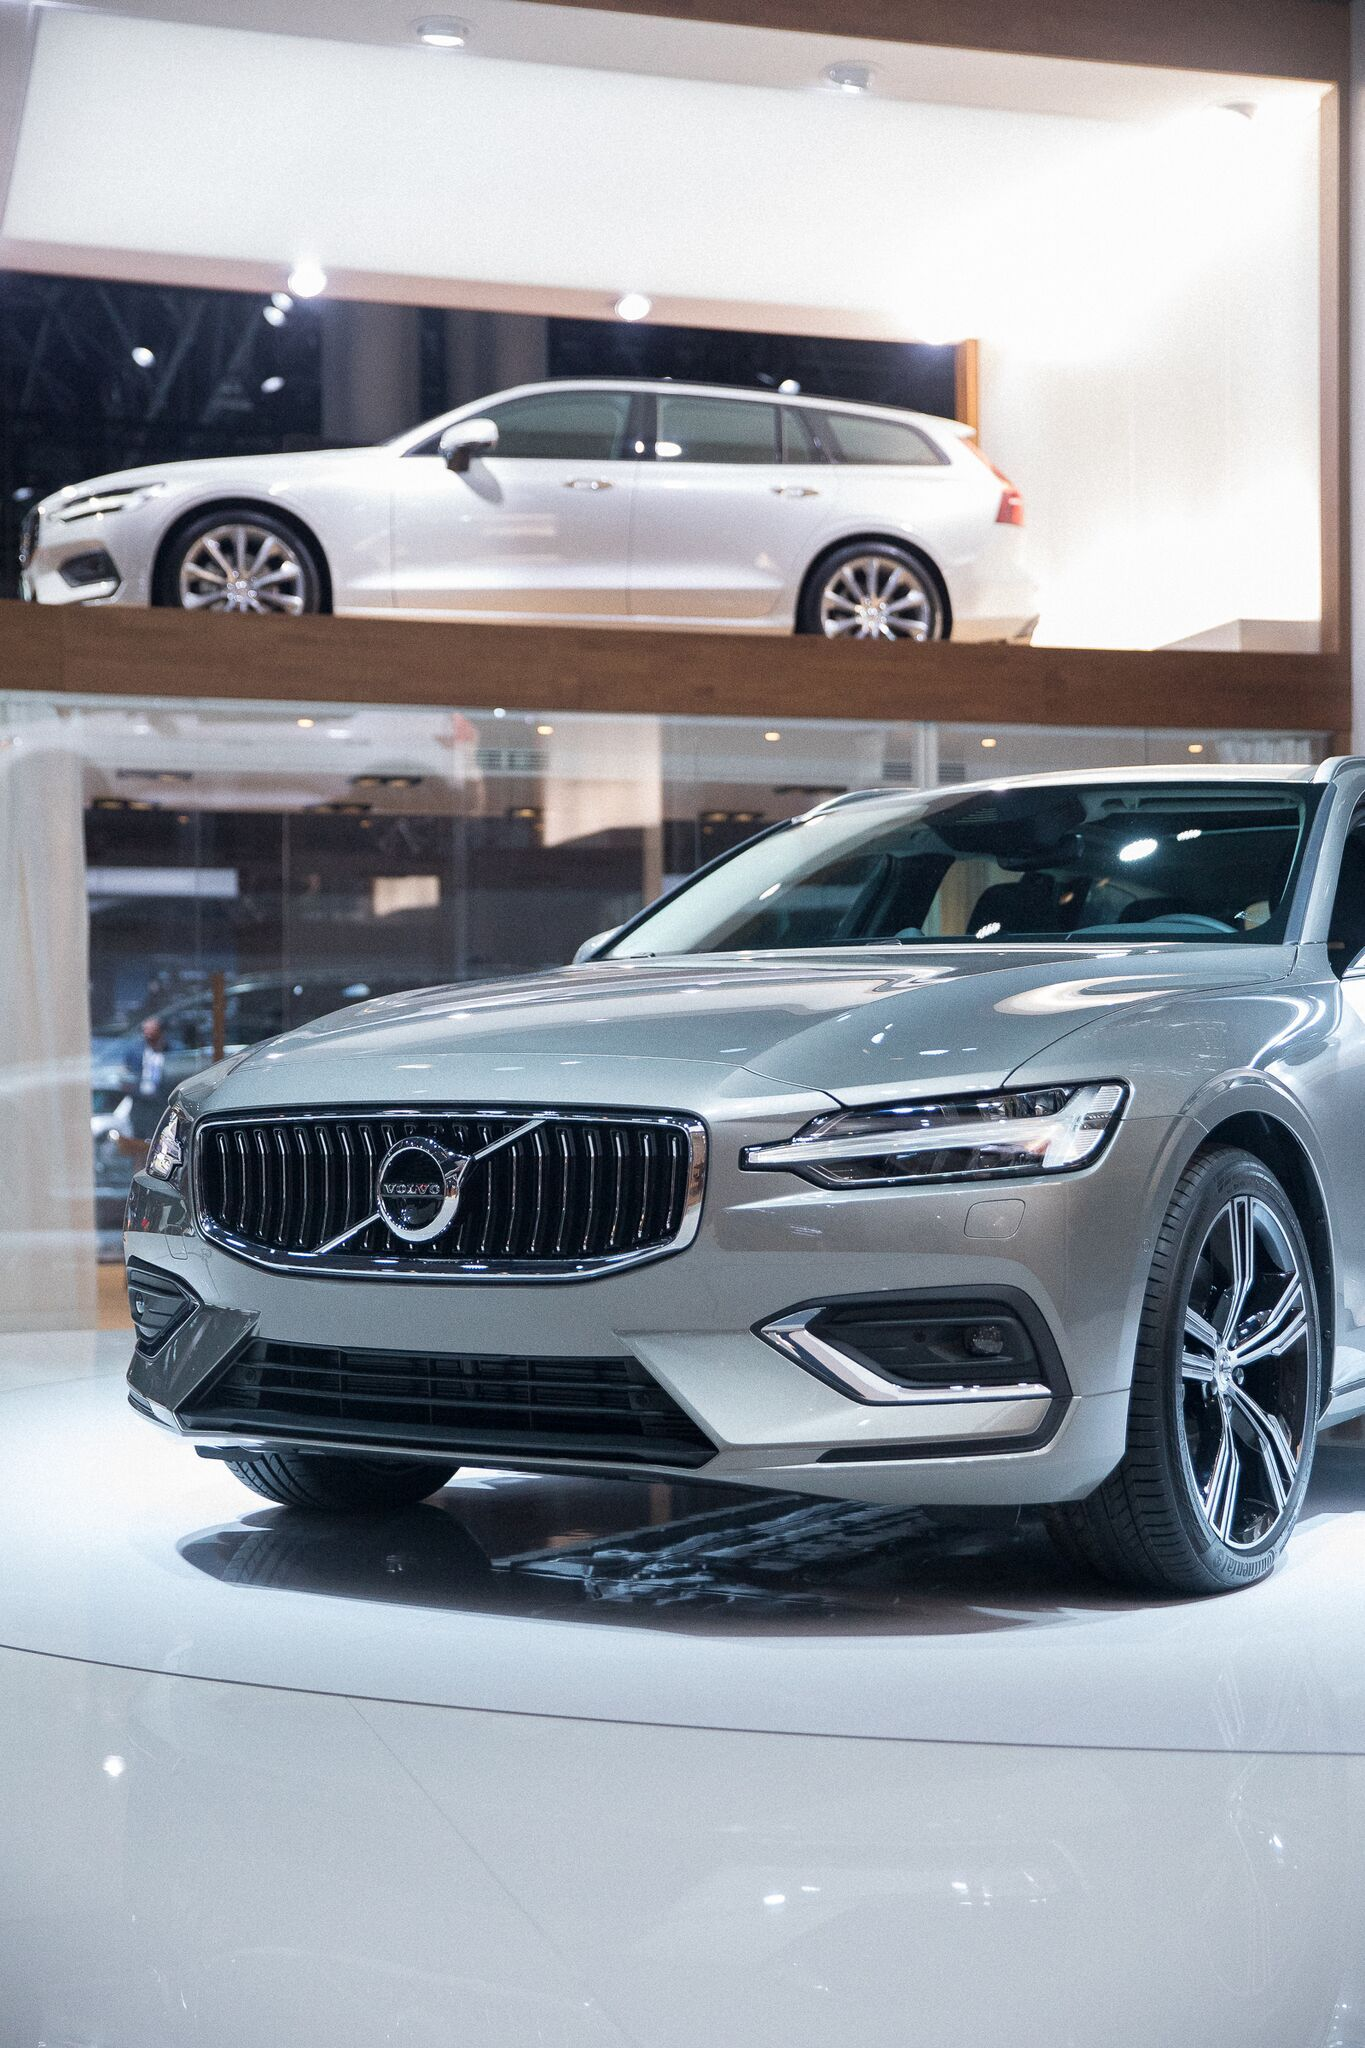 The Volvo V60 Is A Versatile Vehicle That Helps You Make The Most Of Every Moment An Advanced Chassis Powerful Engines And A Ch Volvo Cars Volvo Volvo V60